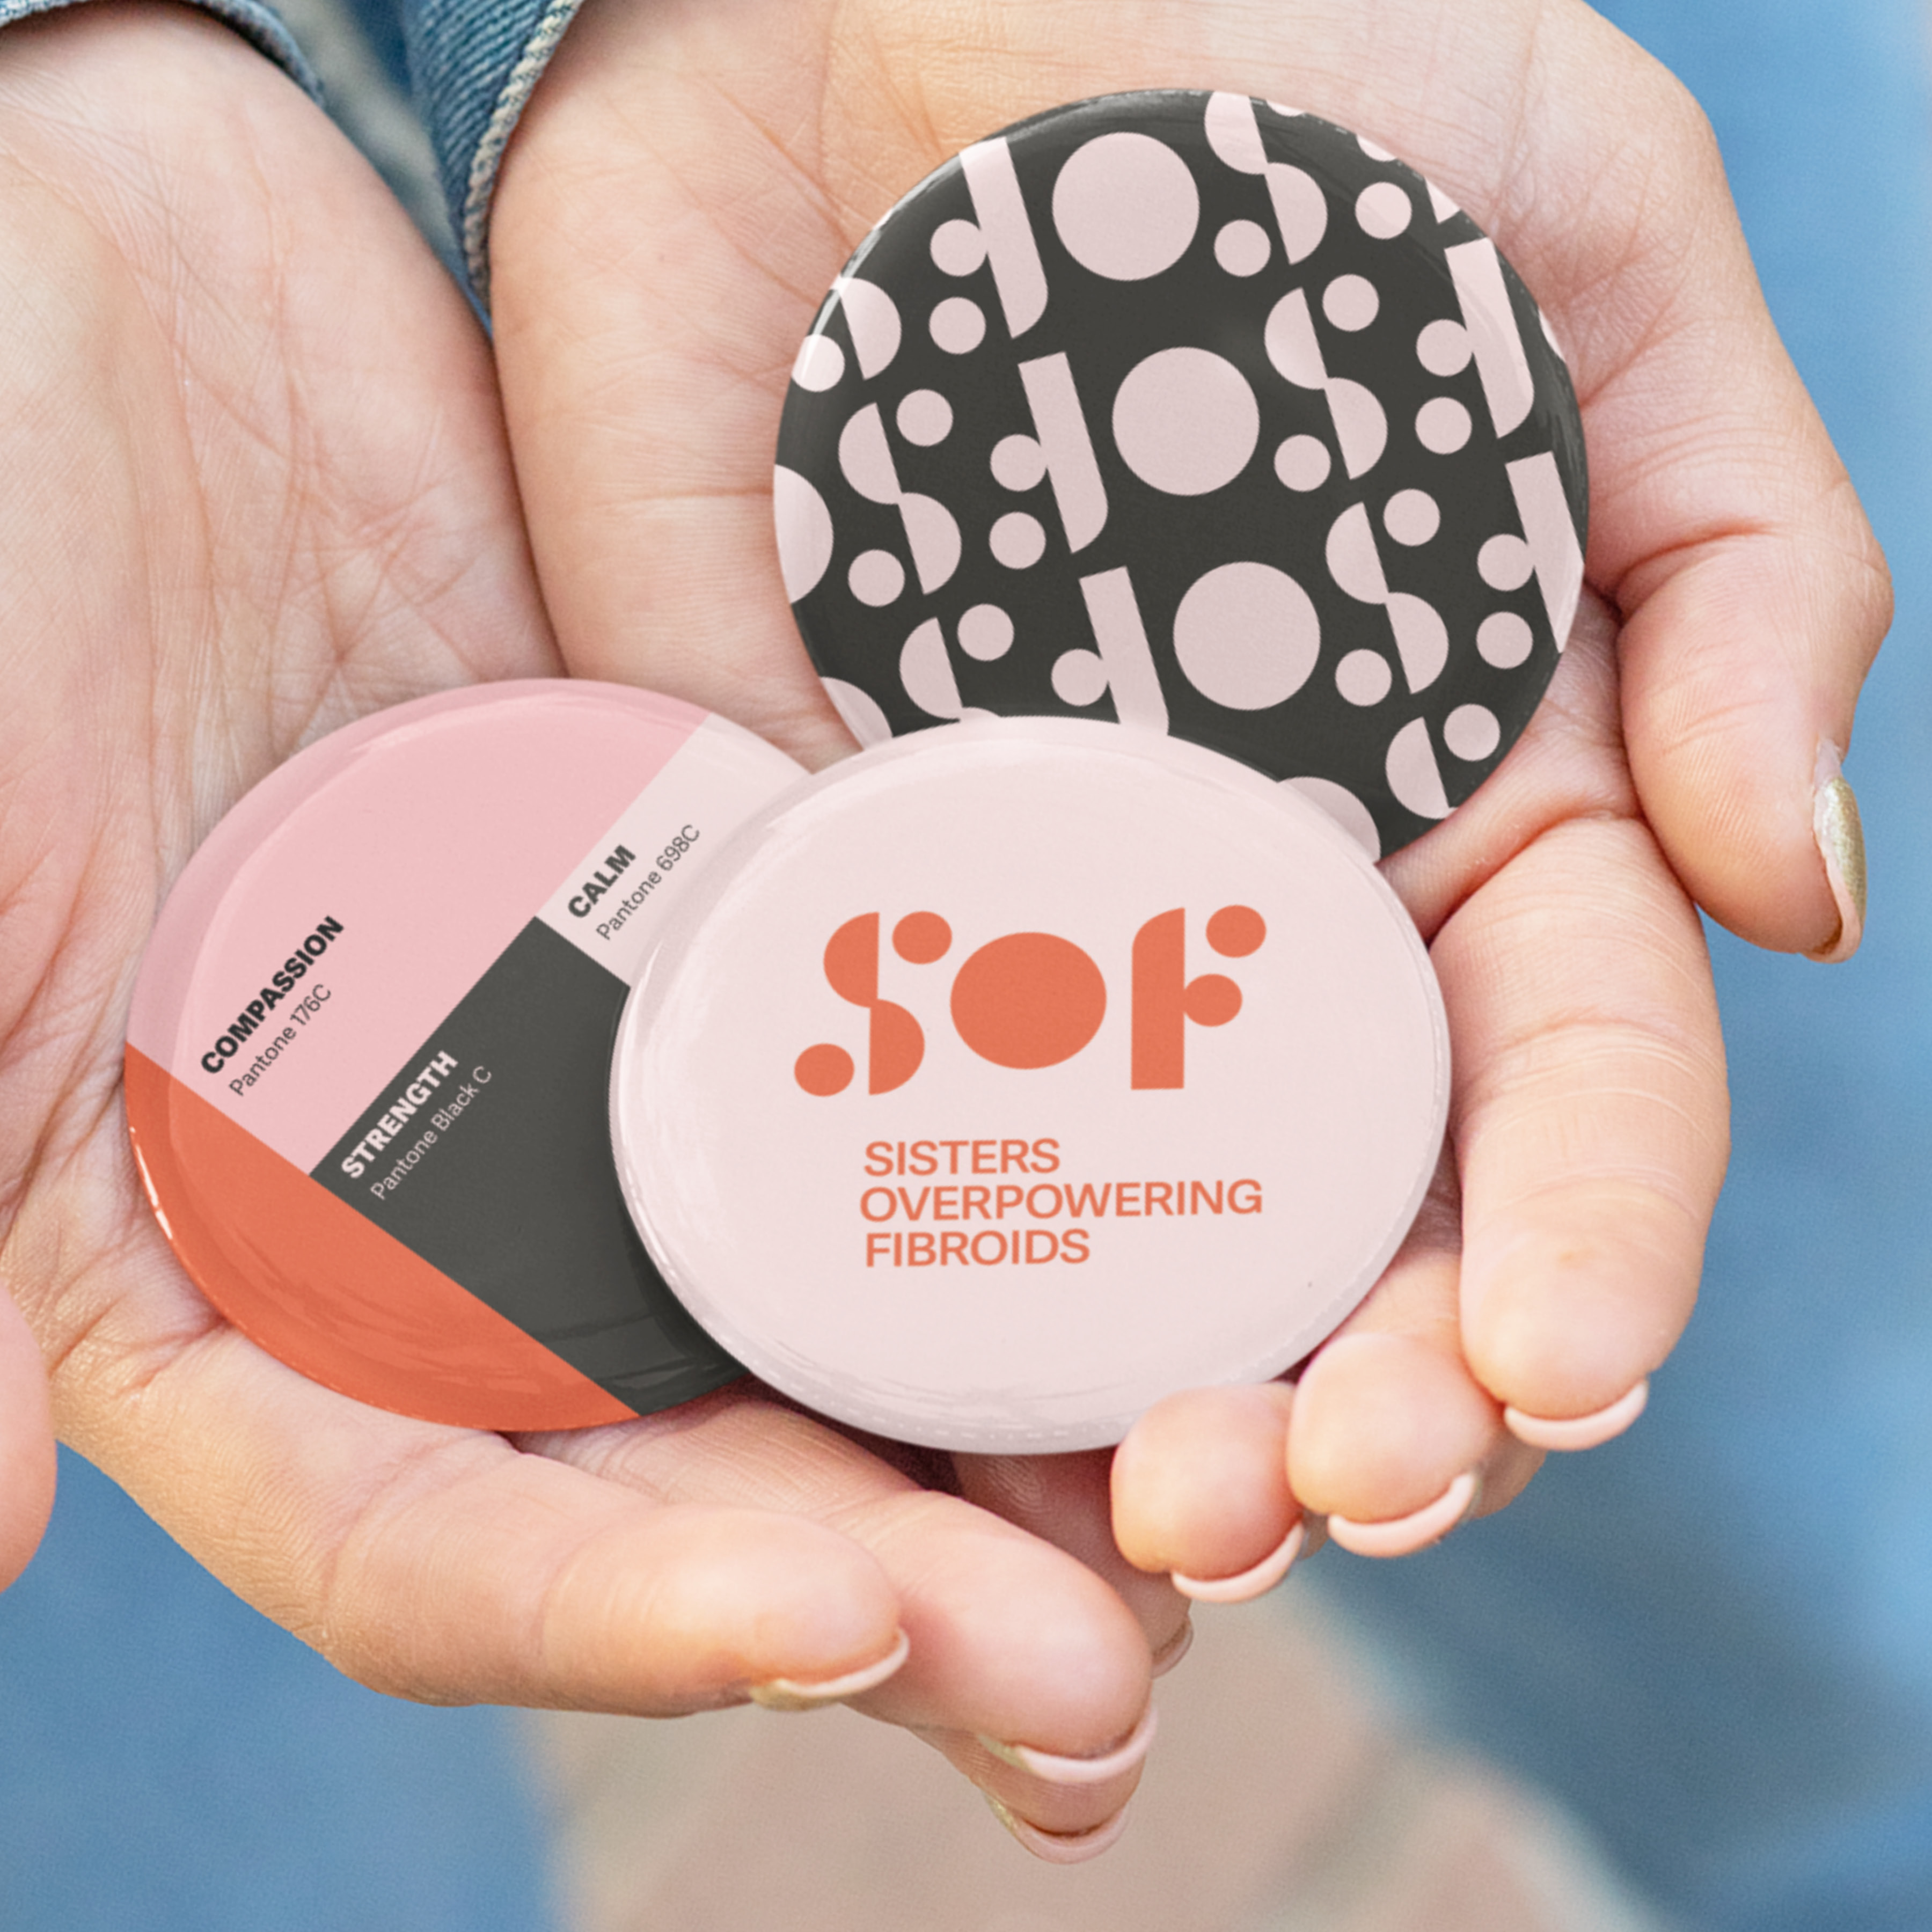 SOF | Sister Overpowering Fibroids